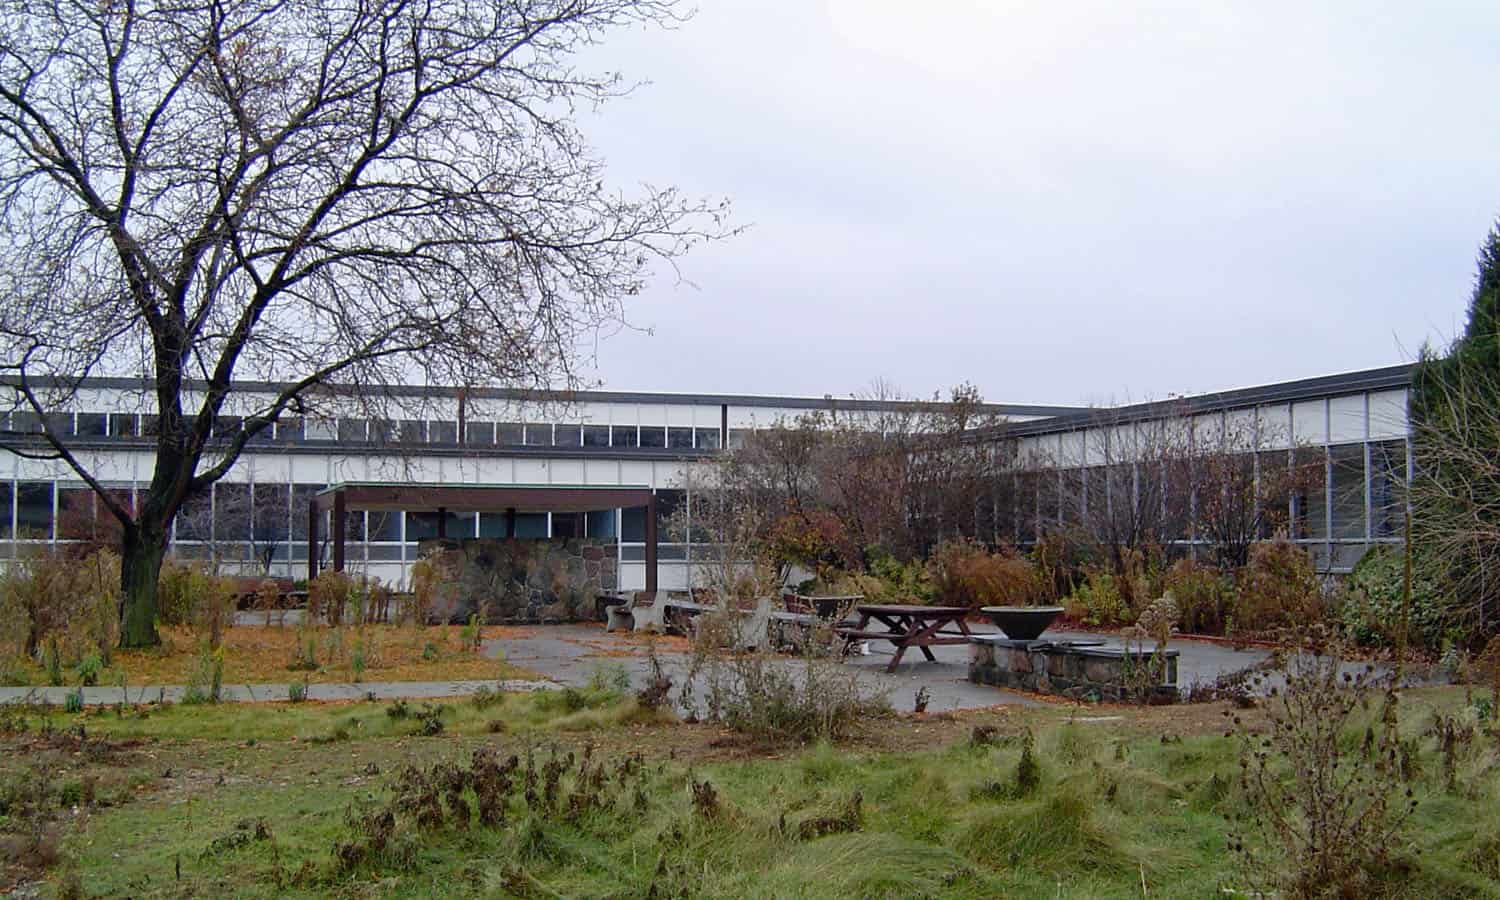 One of the three garden courts, designed by Dunington-Grubb and Stensson, shown here overgrown following the closure of the complex (Unterman McPhail)